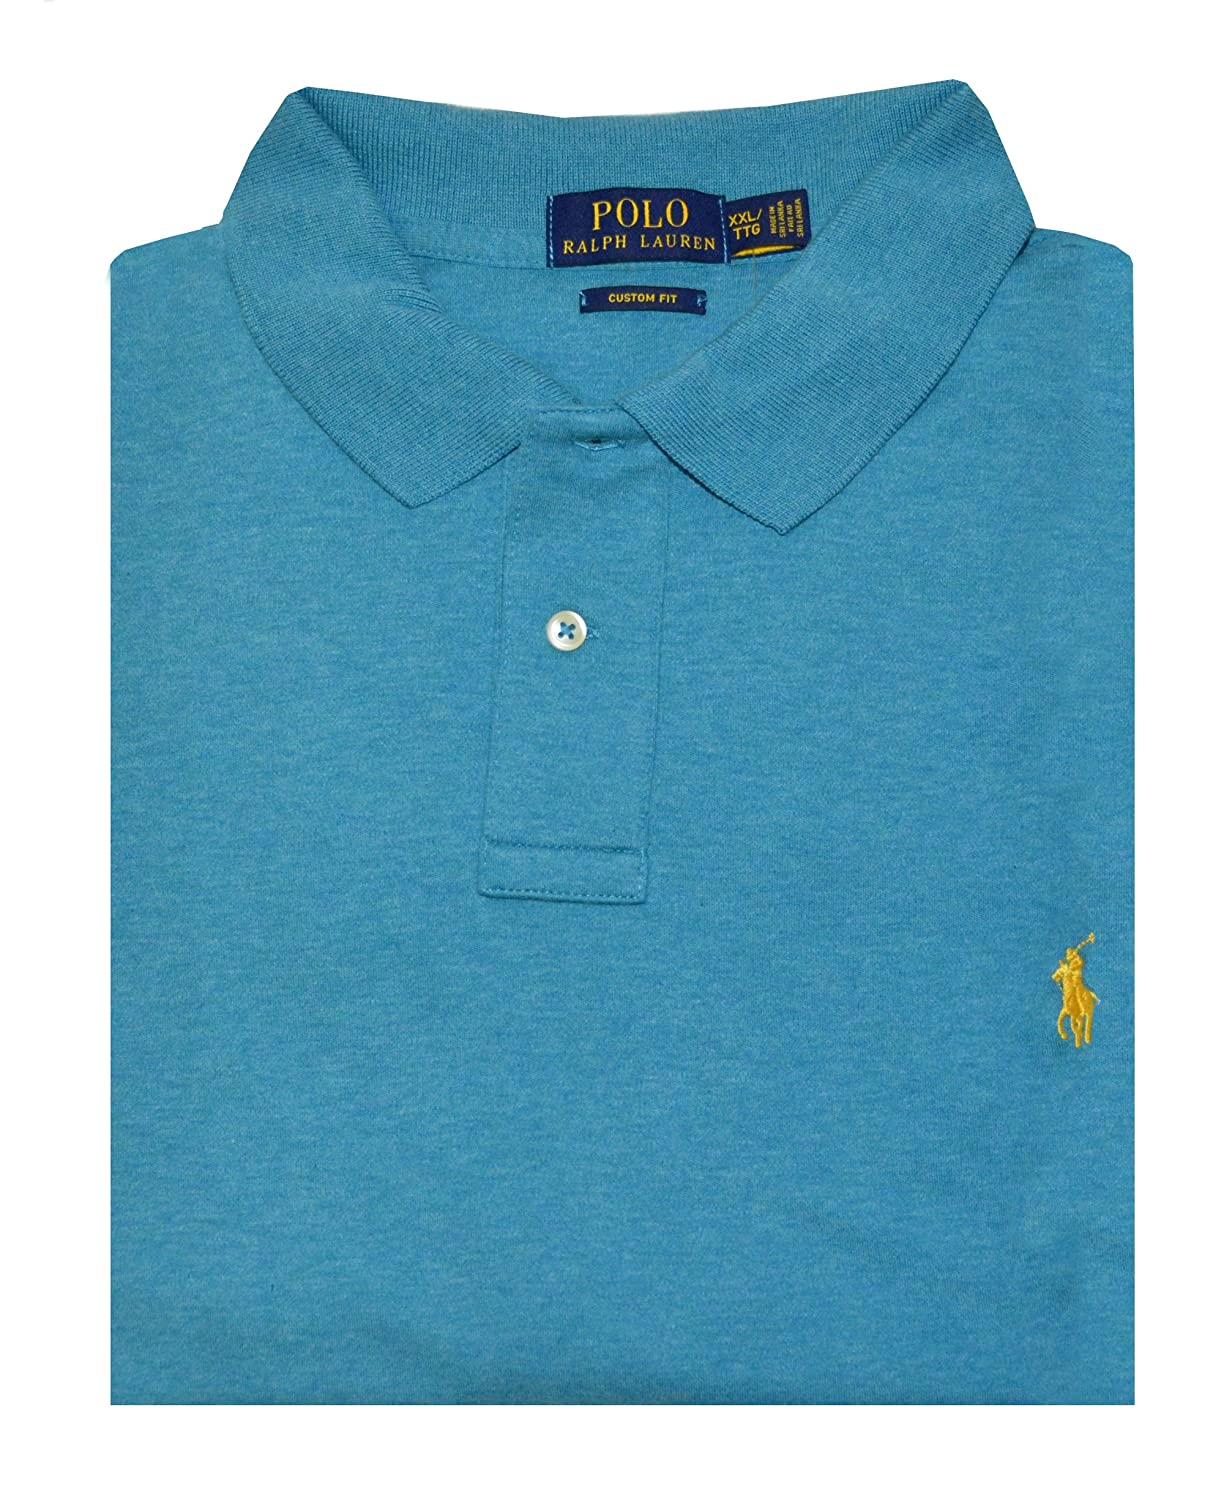 Real polo and fake polo. 3 Ways to Recognize a Fake Ralph